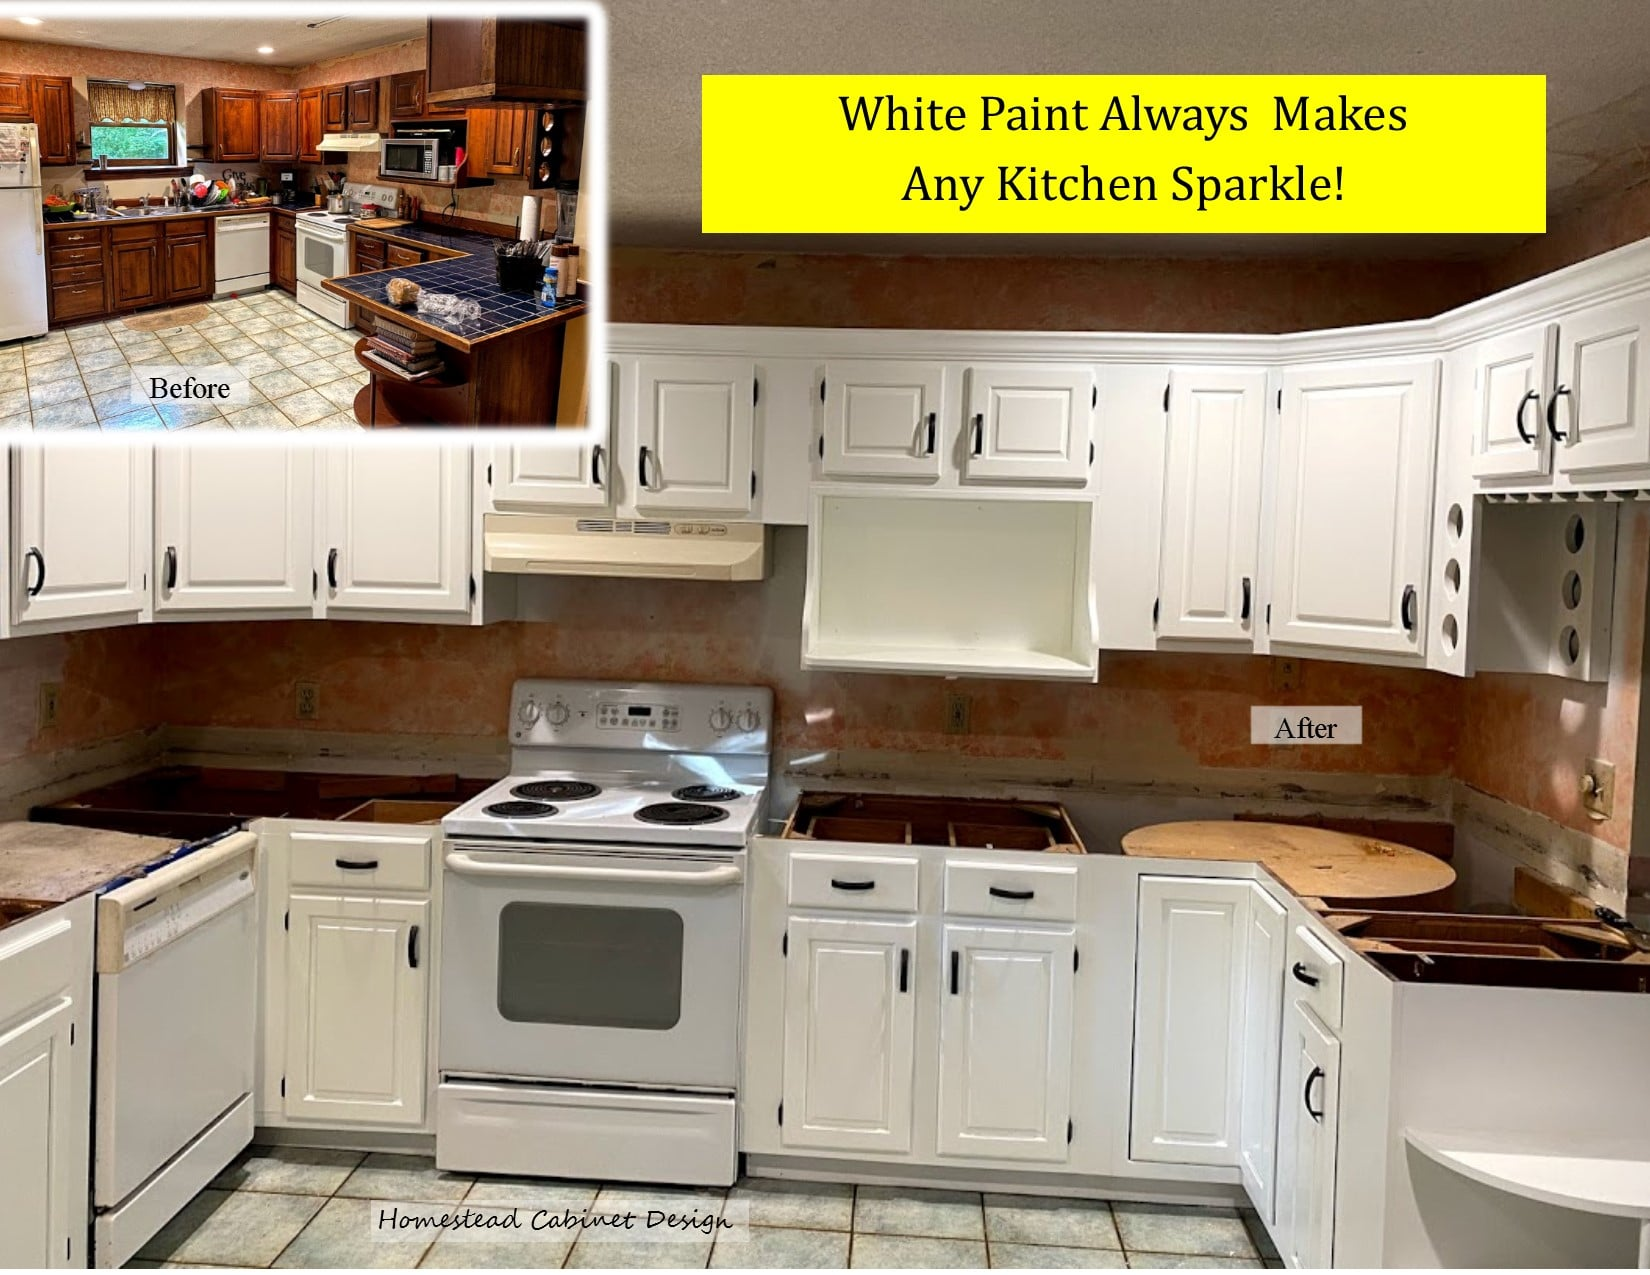 What Is The Best Paint For Kitchen Cabinets Homestead Cabinet